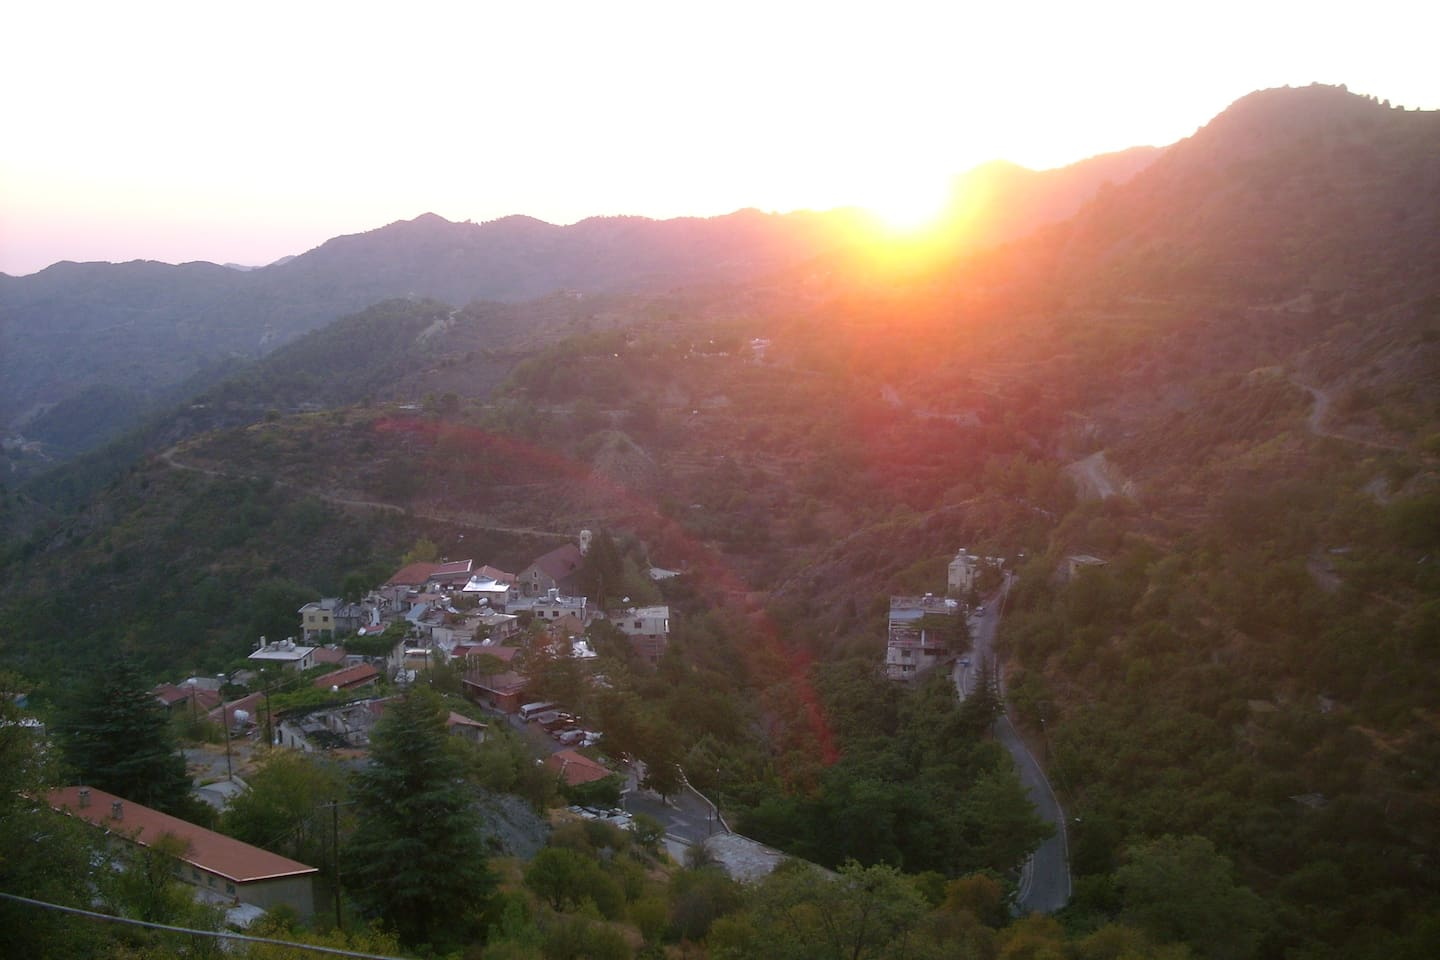 SUNRISE. VIEW FROM BALCONY